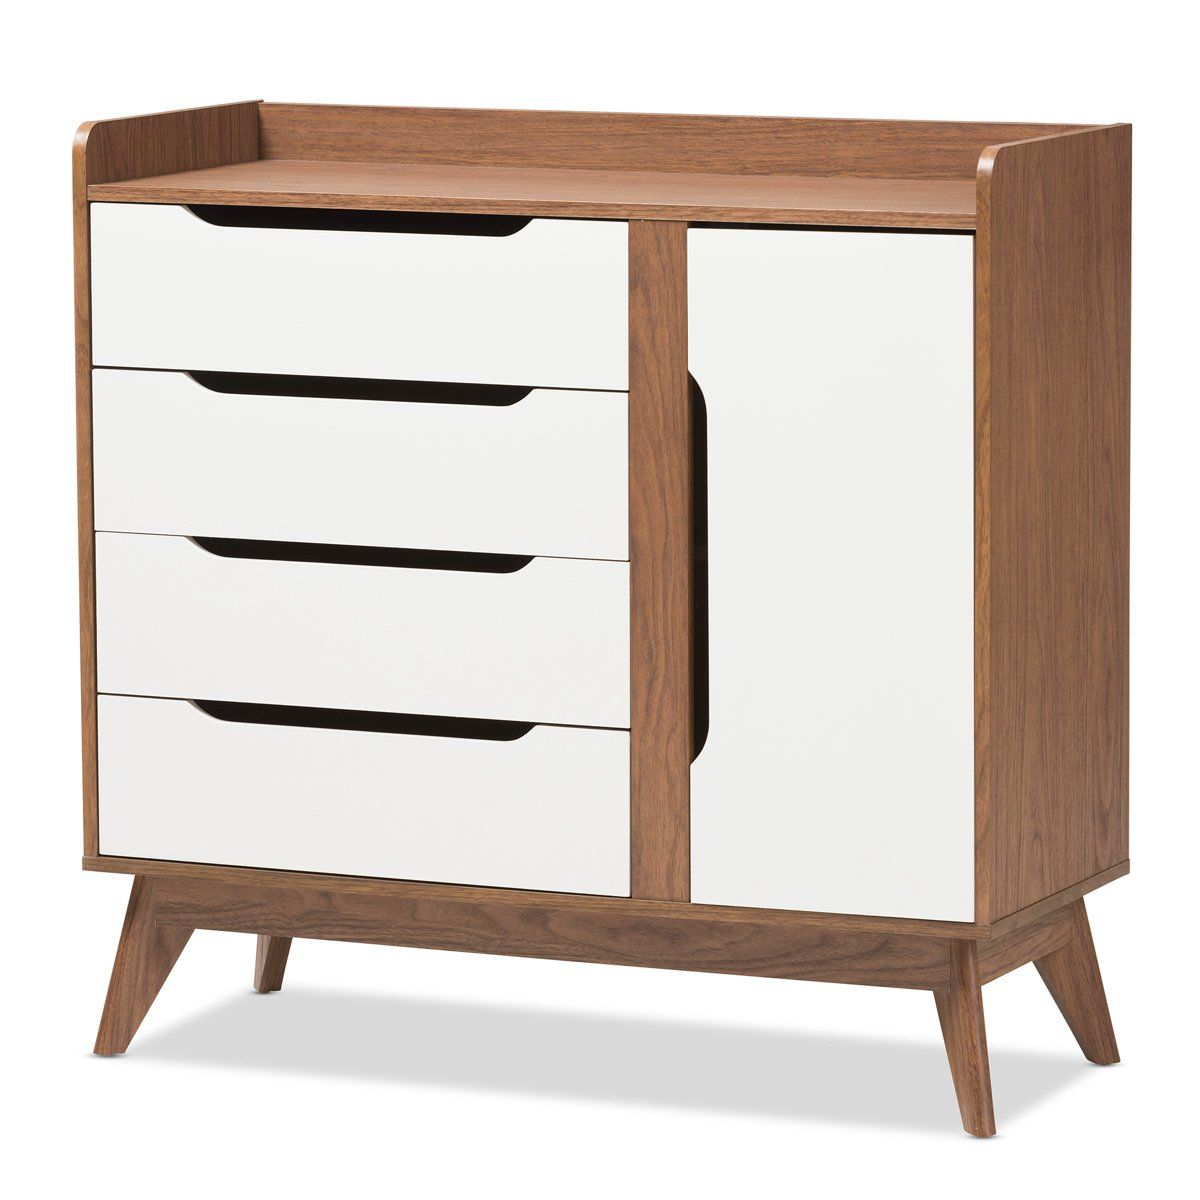 Baxton Studio Brighton White U0026 Walnut Wood Storage Shoe Cabinet